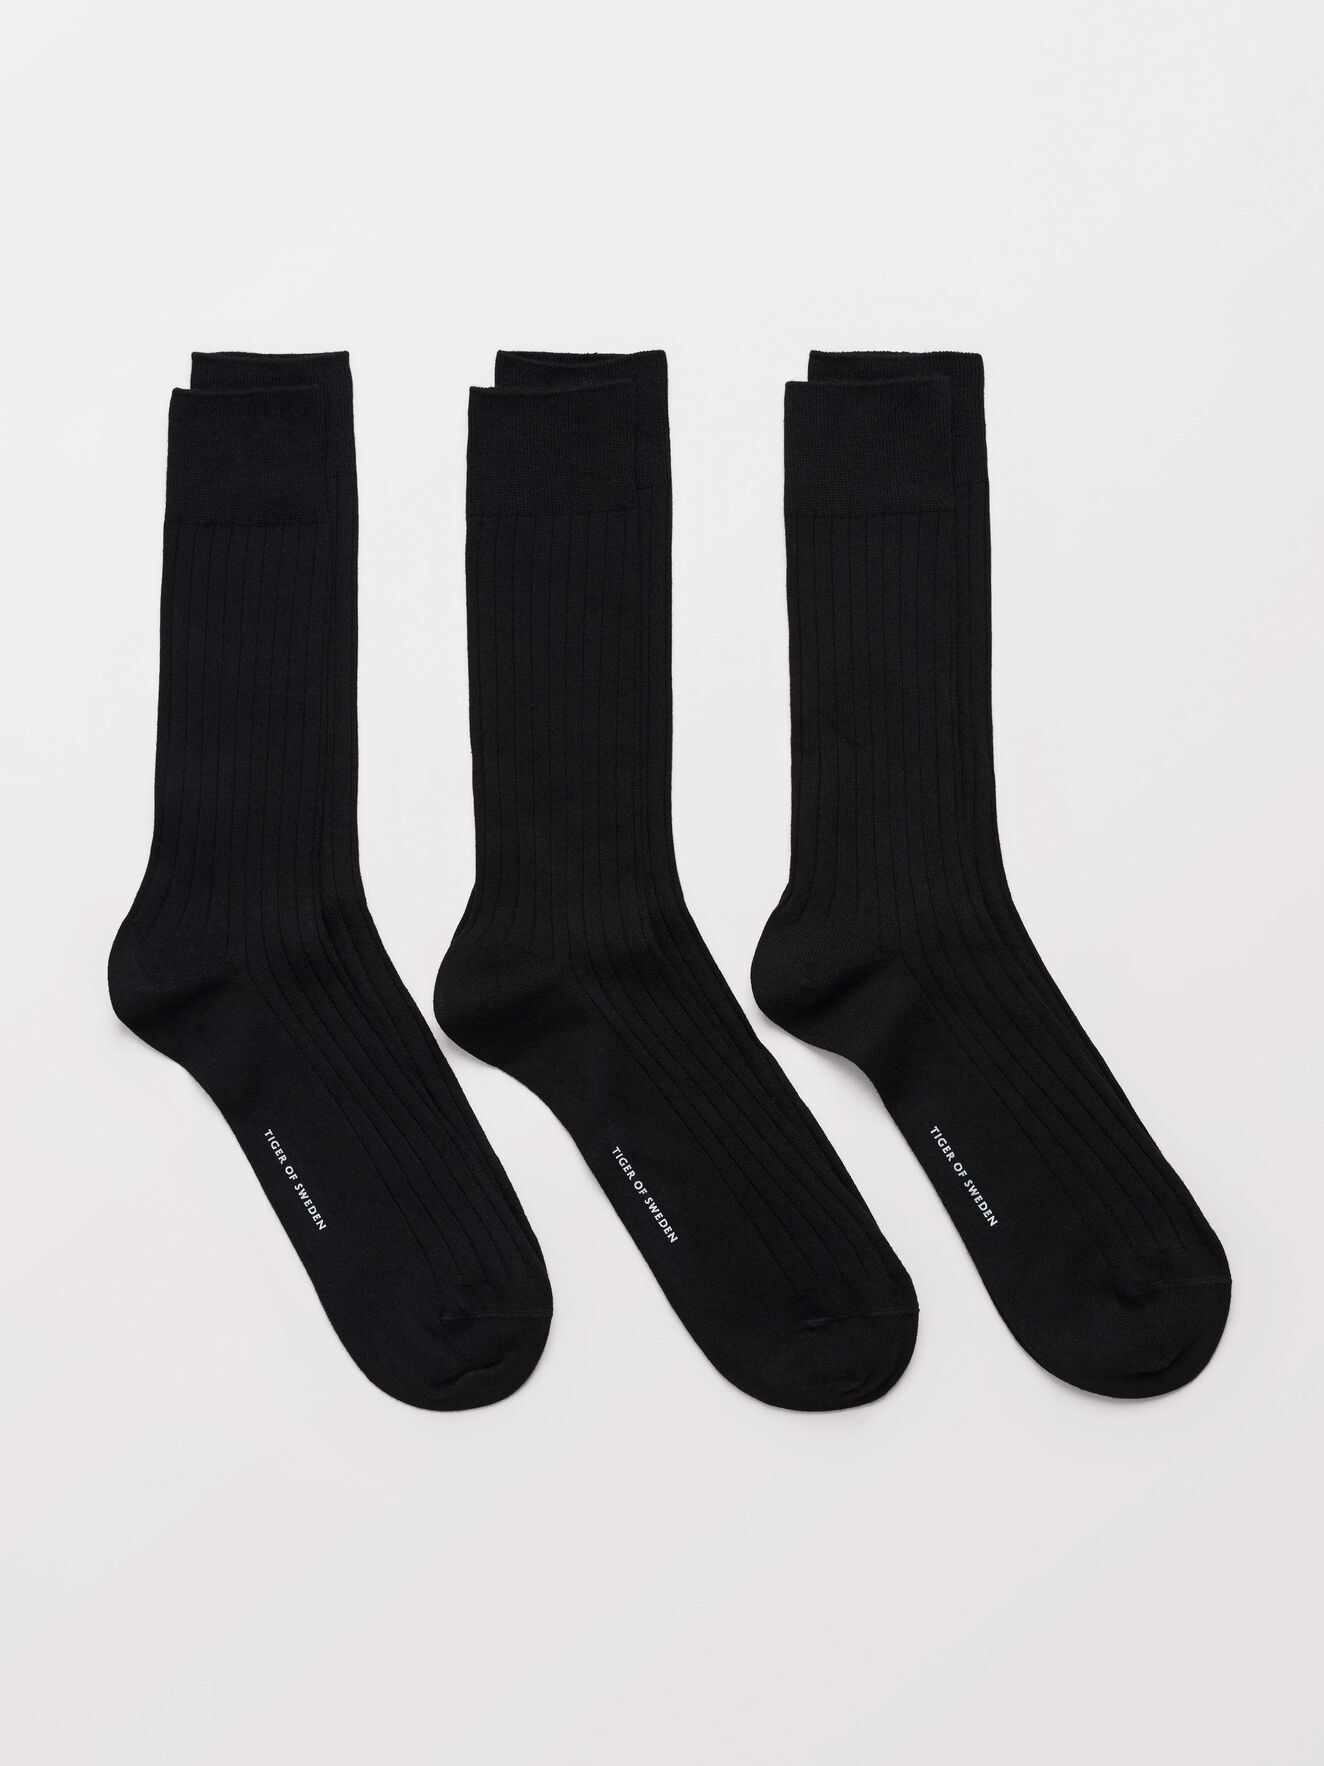 Reigate R3 Socks in Black from Tiger of Sweden